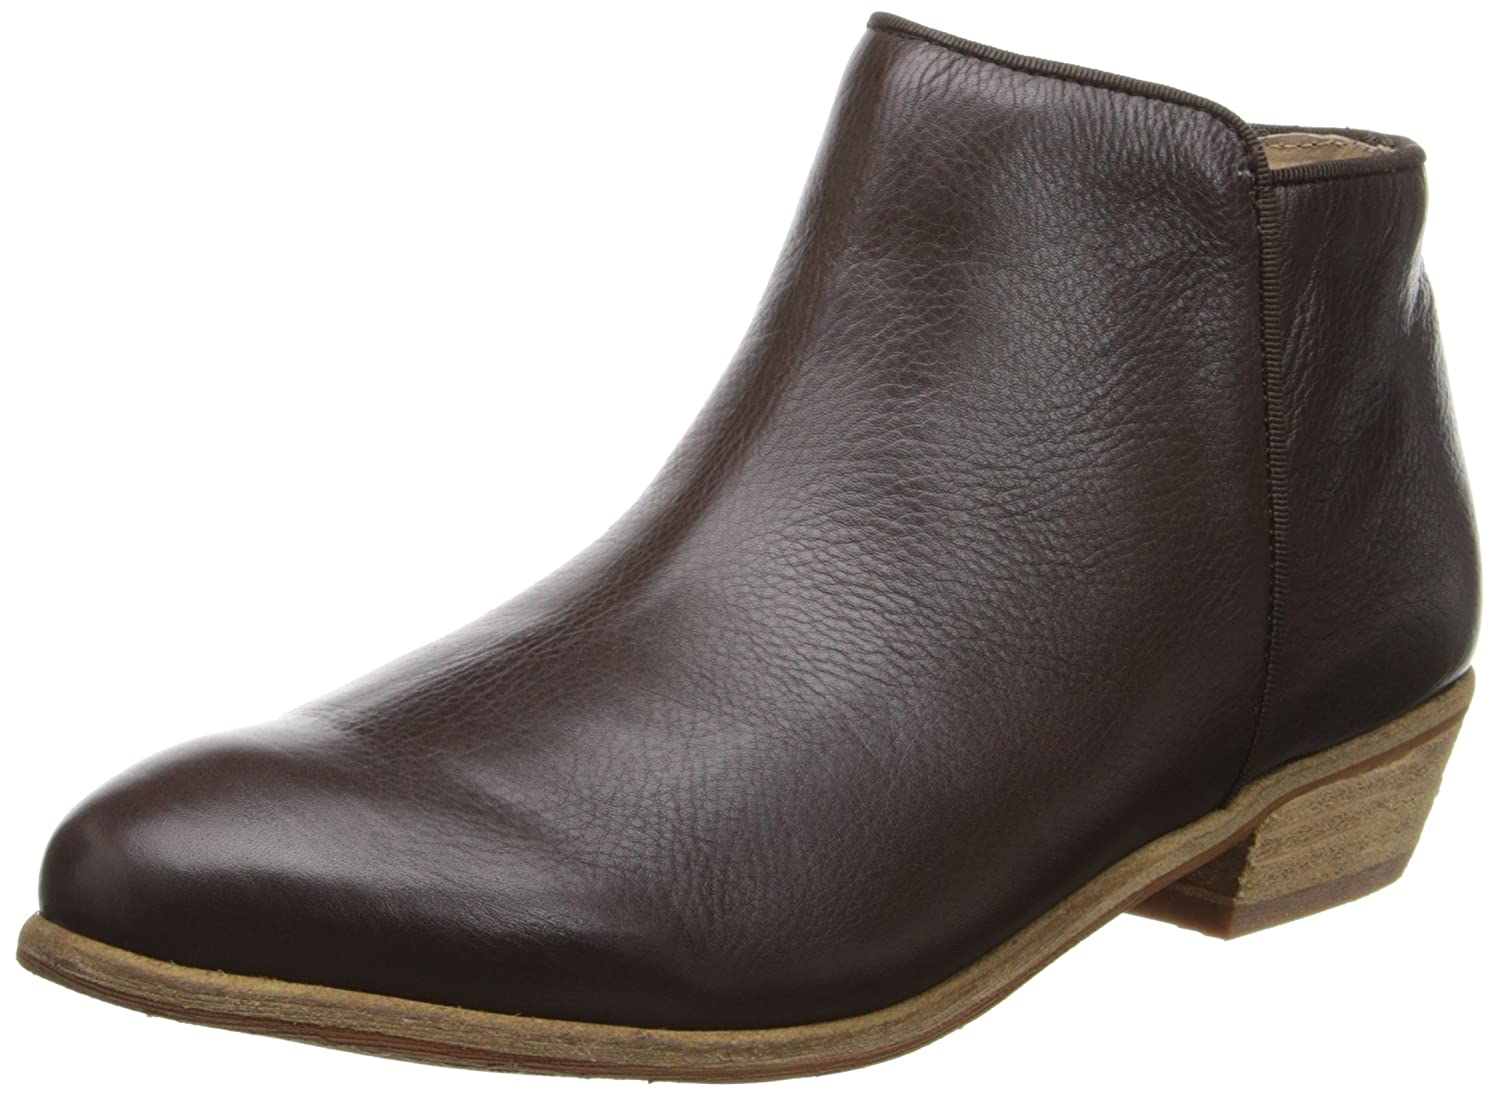 SoftWalk Women's Rocklin Chelsea Boot B00HQNFSK6 12 B(M) US|Dark Brown